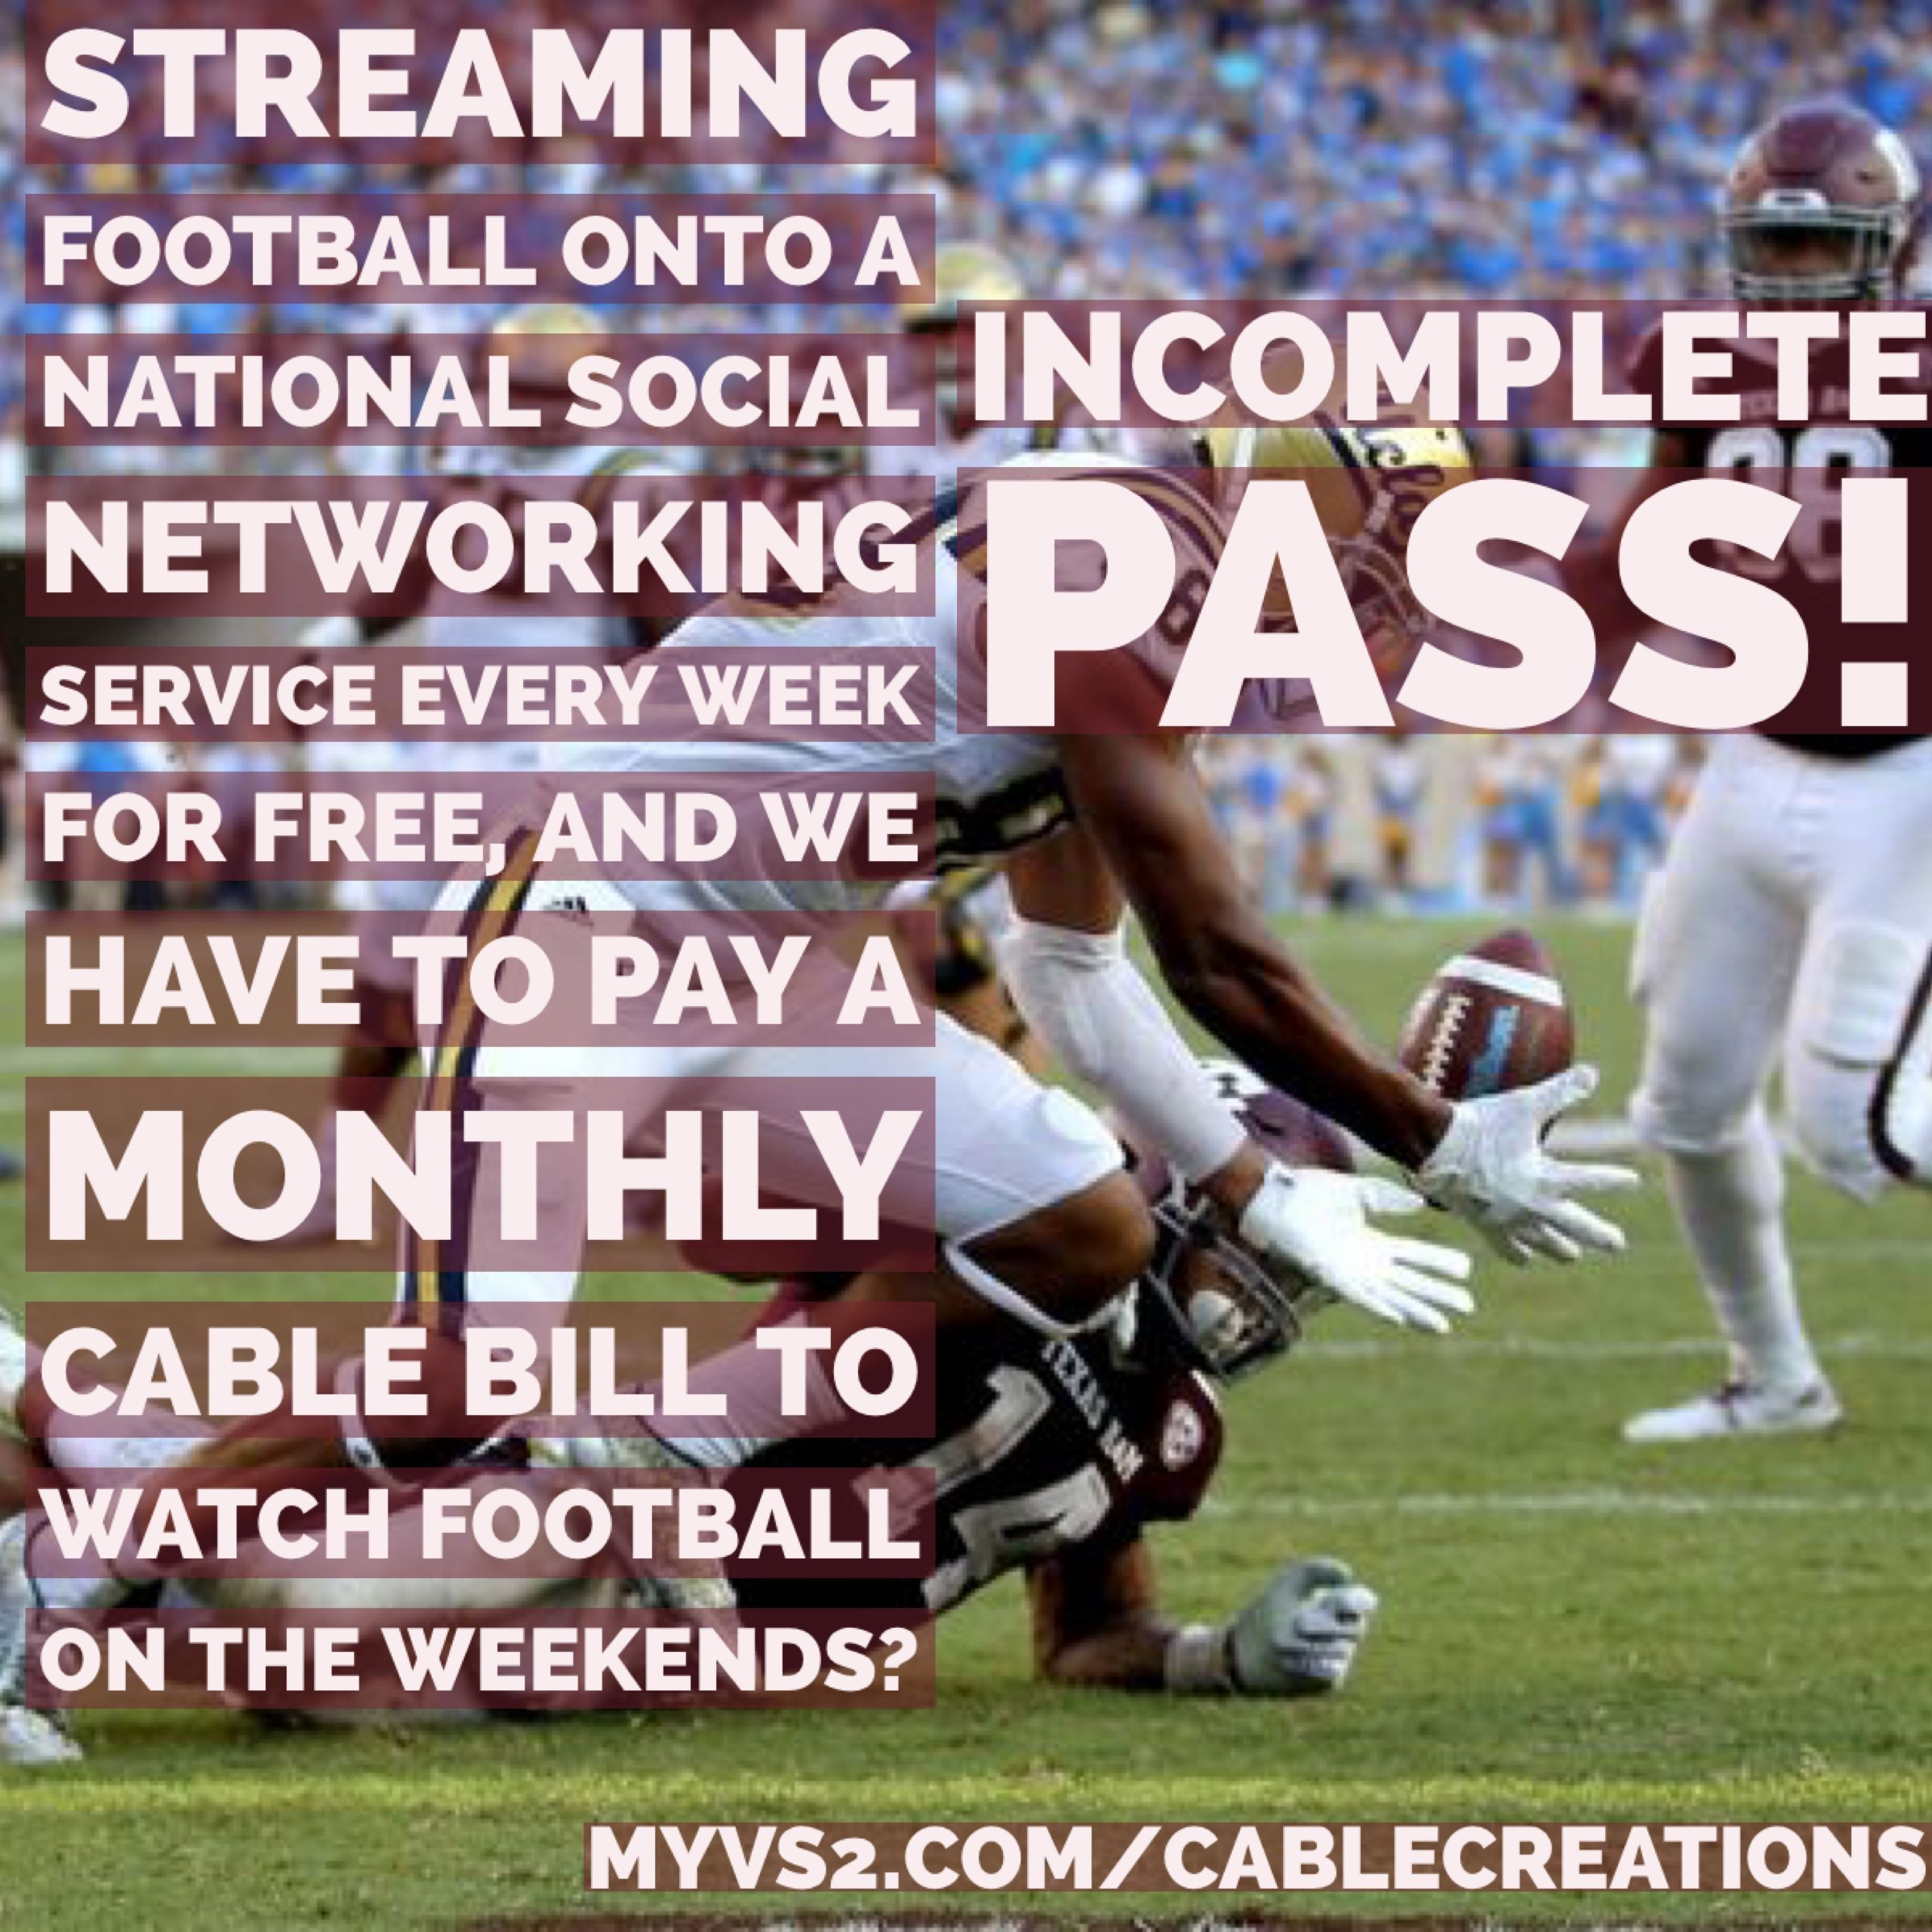 If football games are free on one day, make it free all days by switching to our own streaming media box. ~~~ #StreamingHD #StreamingFootball #Football #StreamingSports #MyVs2DotComBackslashCableCreations